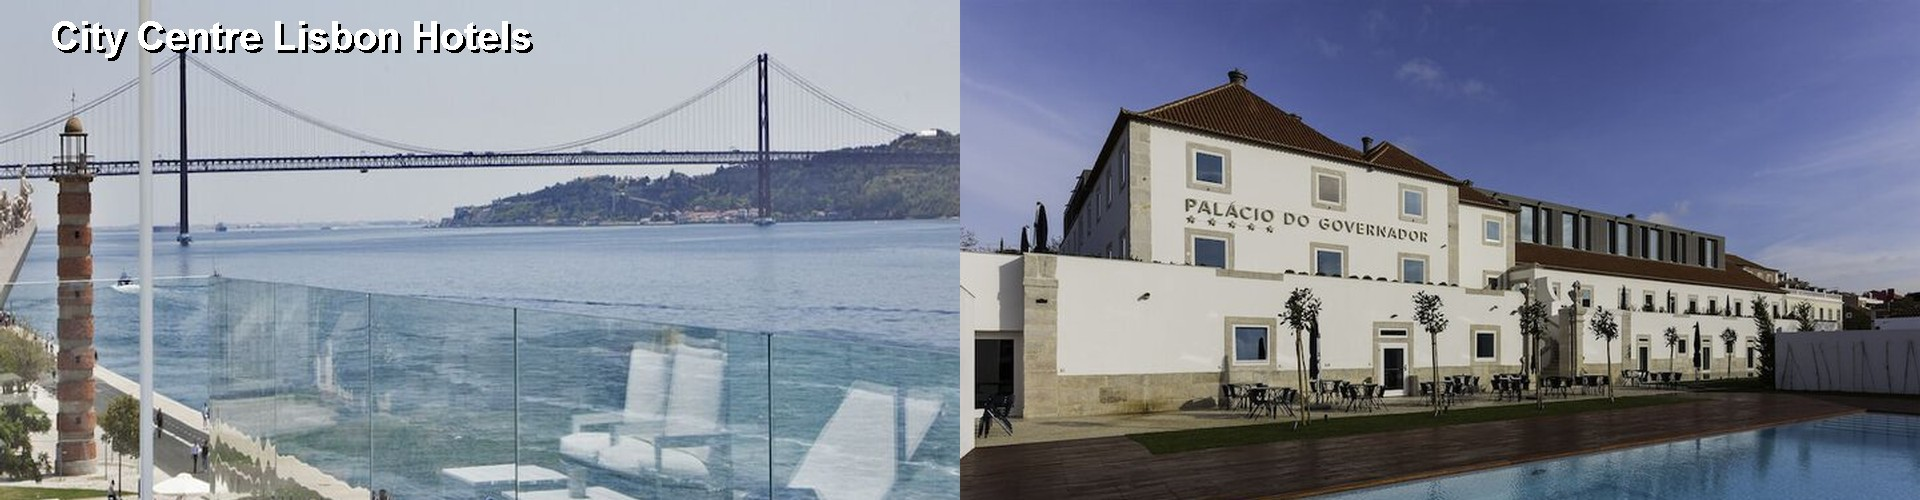 5 Best Hotels near City Centre Lisbon